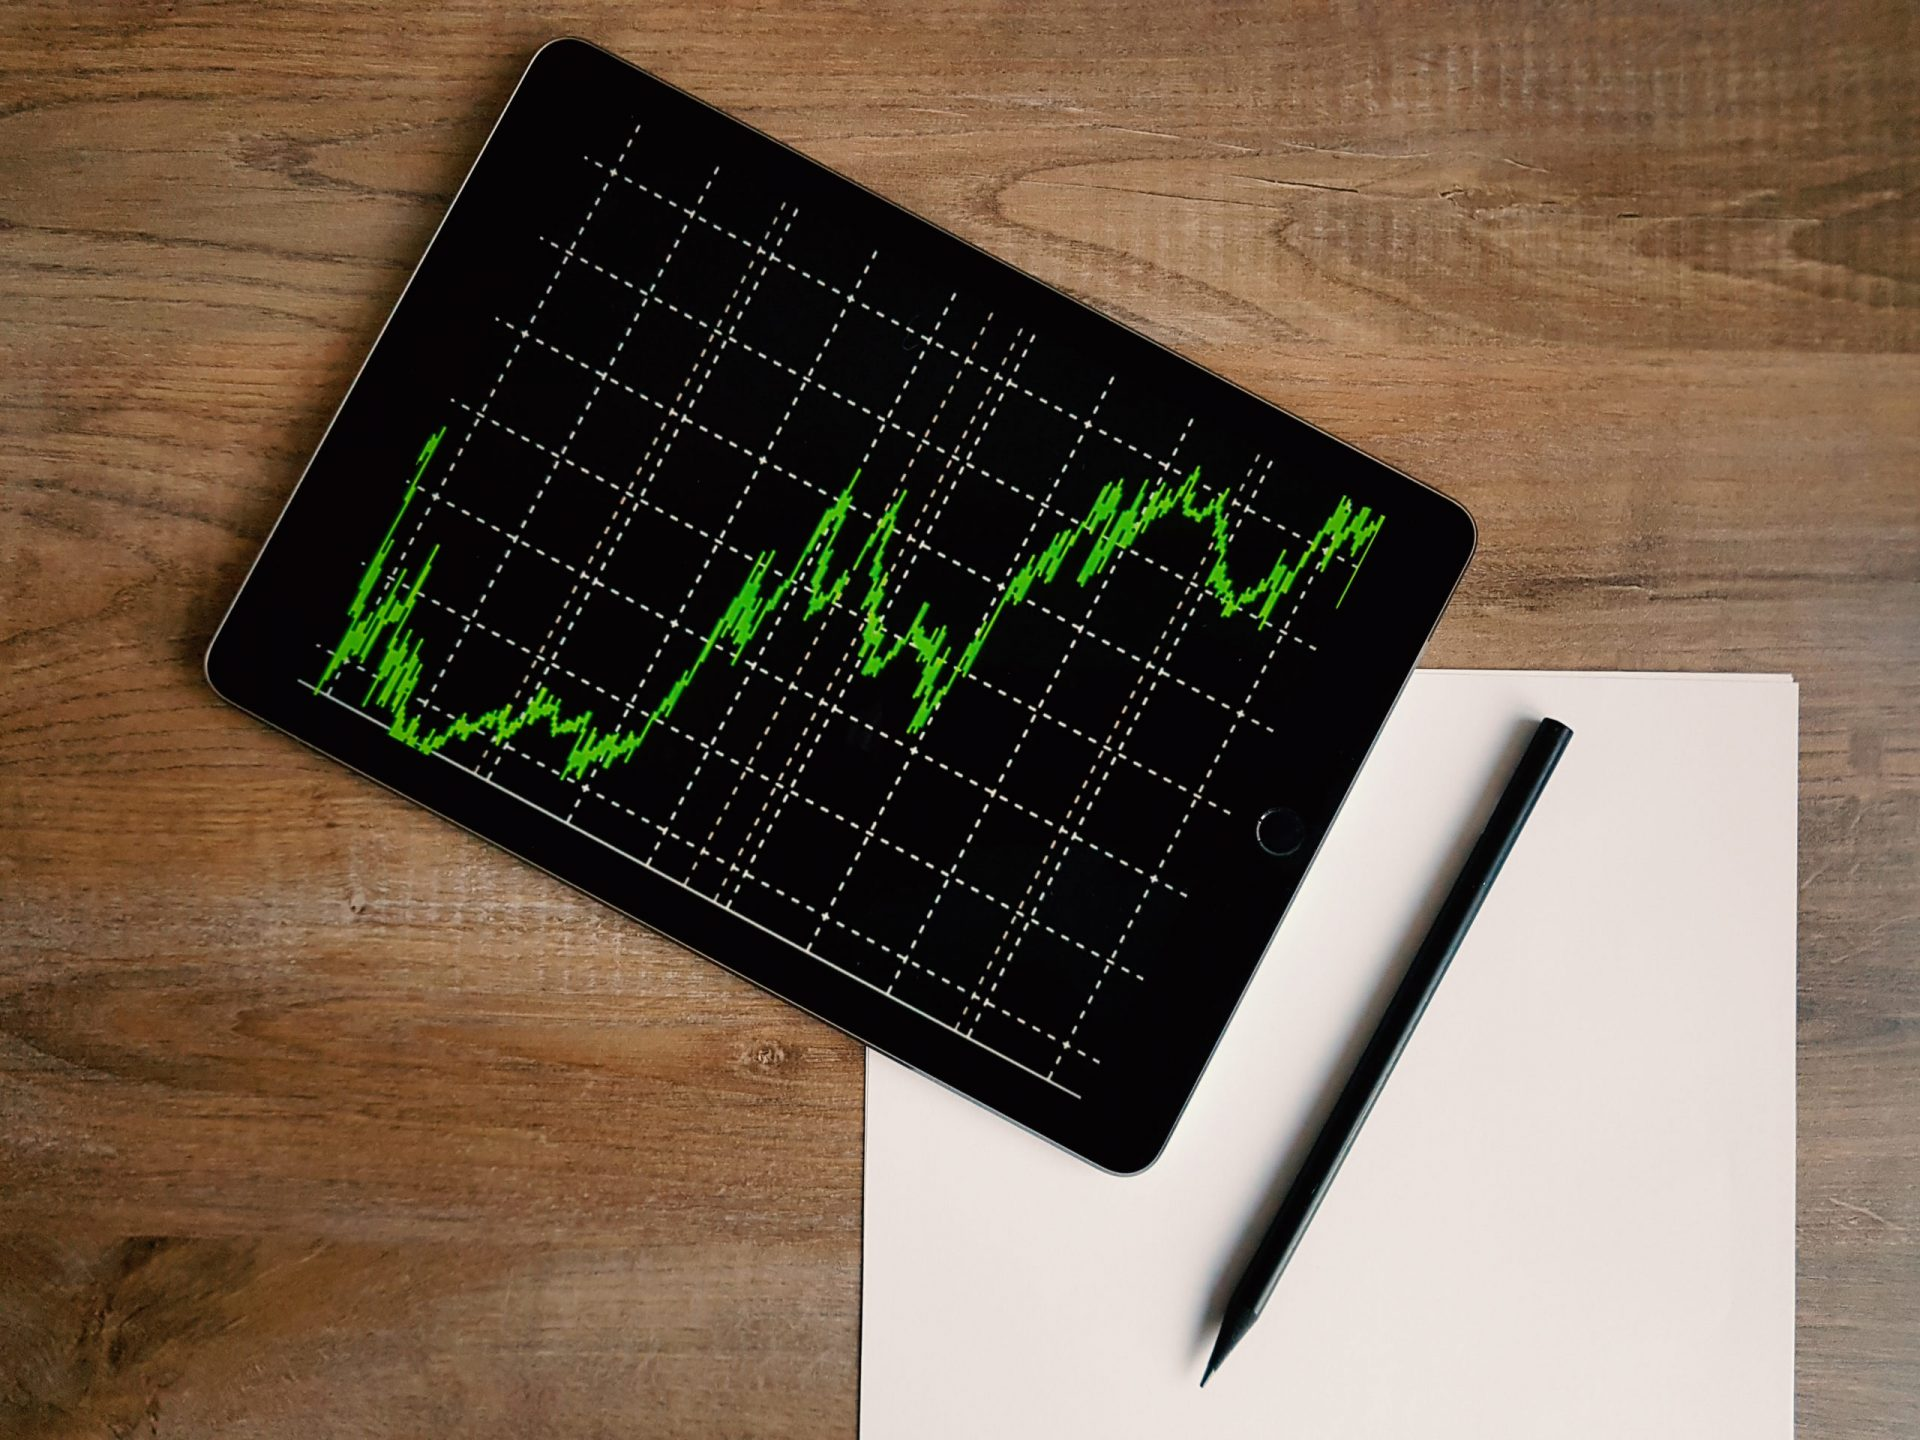 Data is key to returns on investment